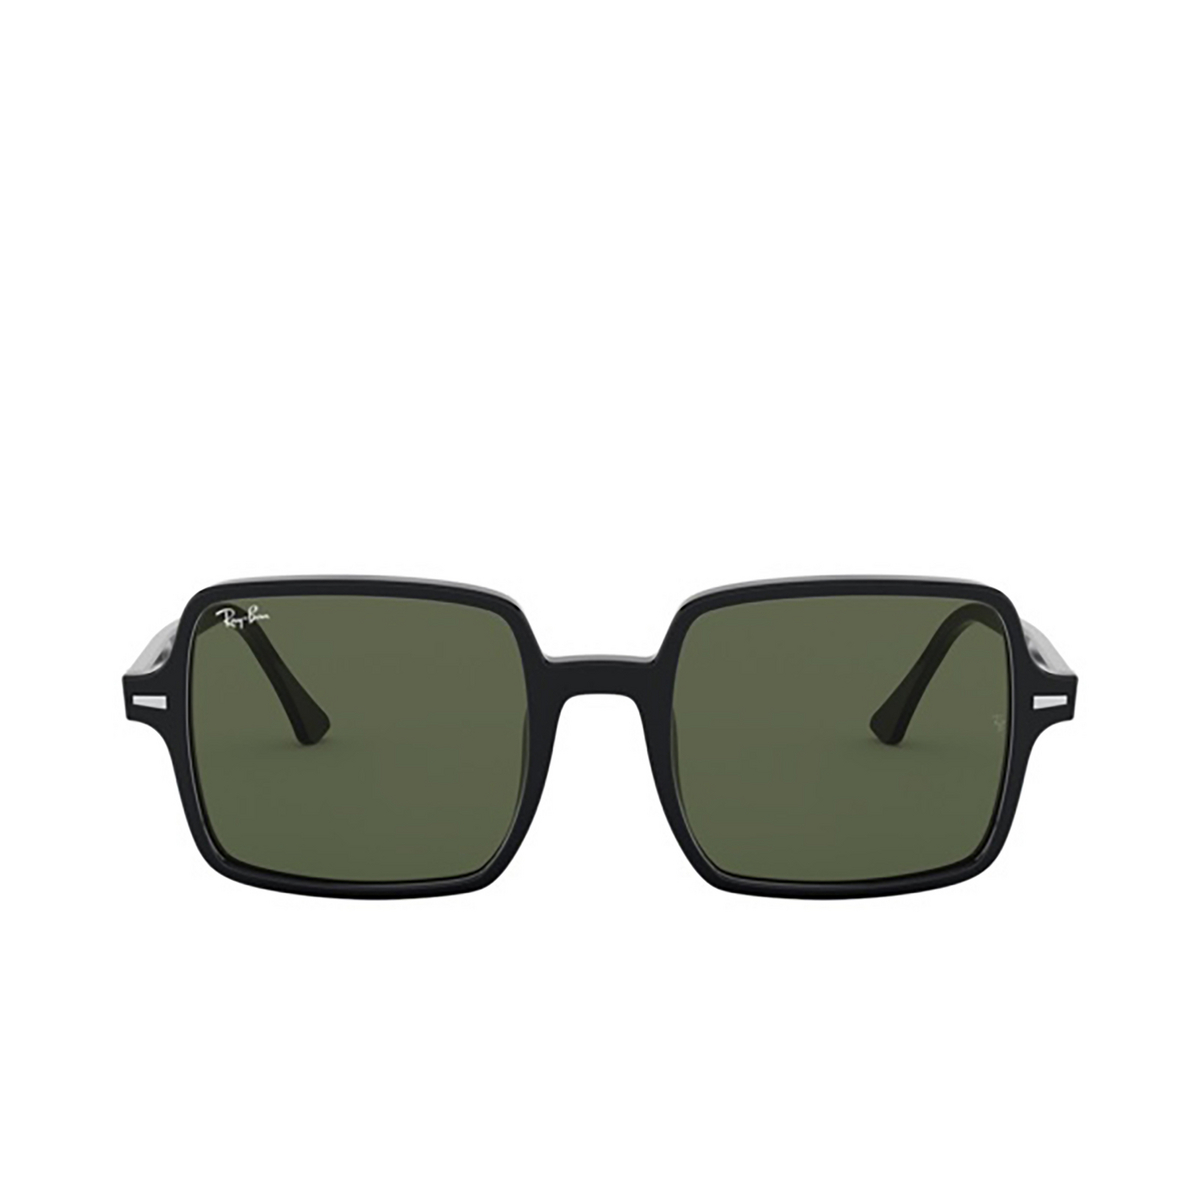 Ray-Ban® Square Sunglasses: Square Ii RB1973 color Black 901/31 - front view.